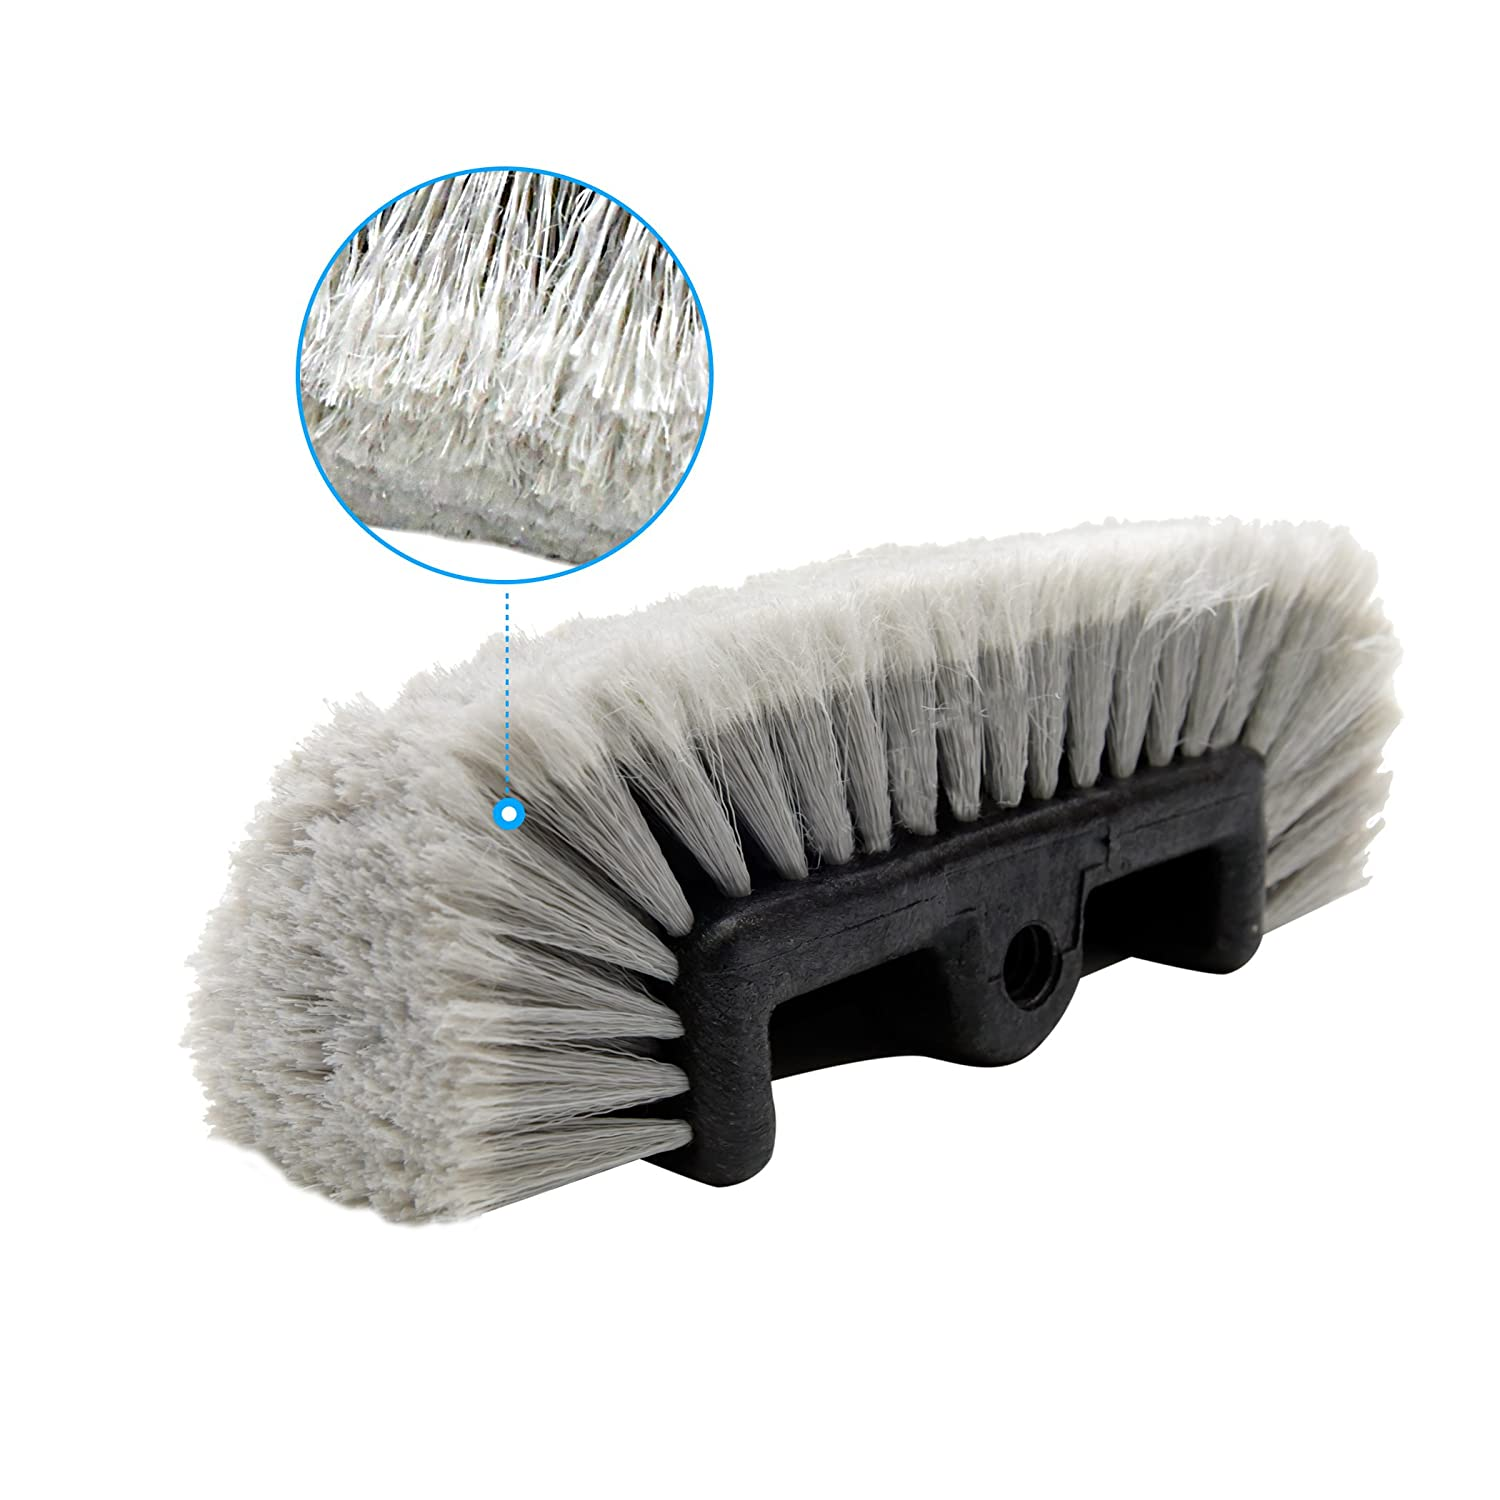 Grey CARCAREZ Flow Thru Dip Car Wash Brush Head with Soft Bristle for Auto RV Truck Boat Camper Exterior Washing Cleaning 12 inch